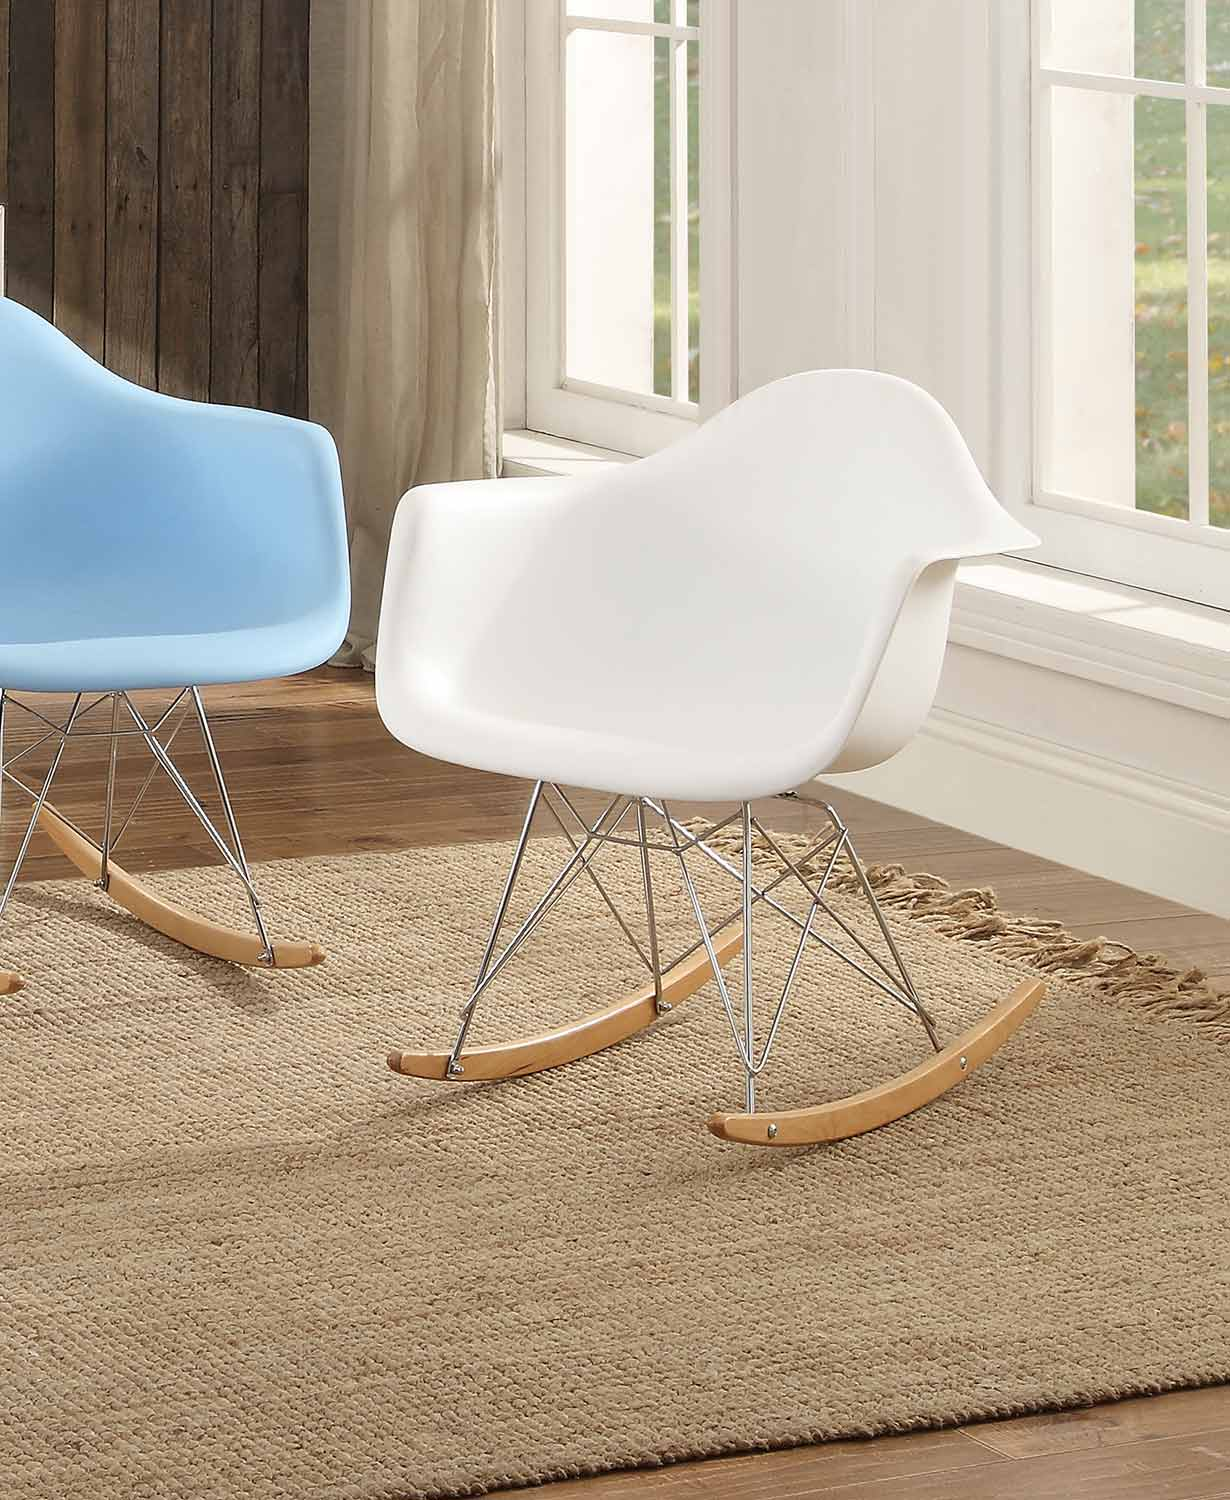 Homelegance Thea Cradle Chair - White with Maple Finish Rocker